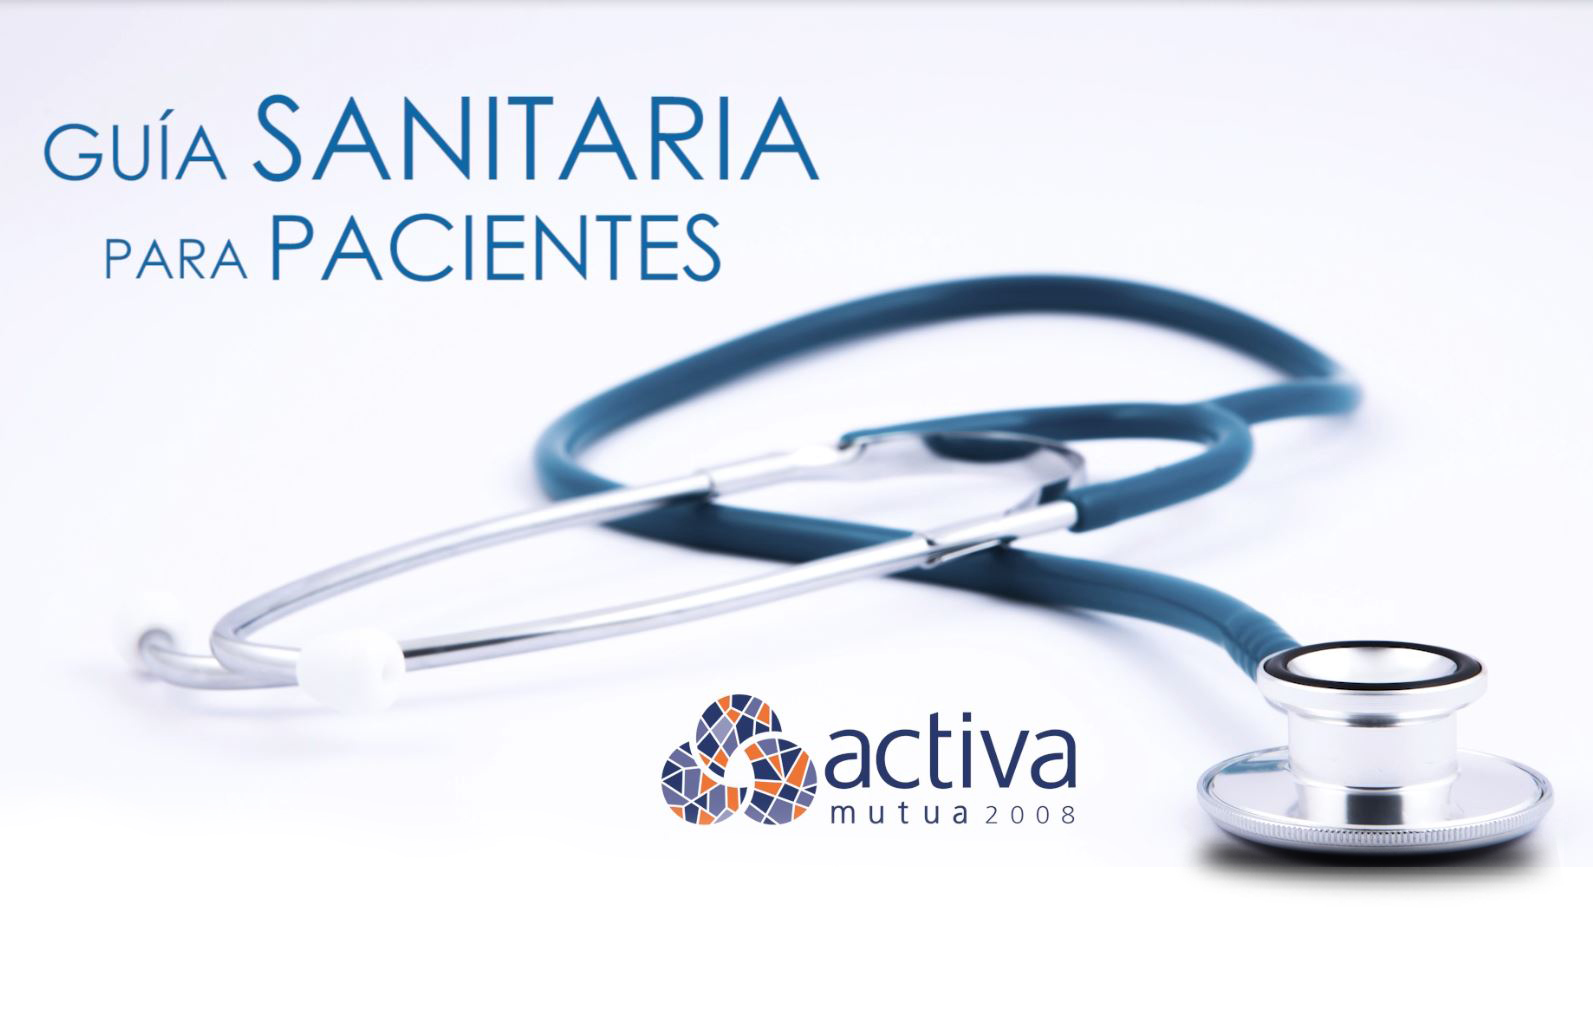 """Guía sanitaria audiovisual para pacientes"", disponible en la web de Activa Mutua."